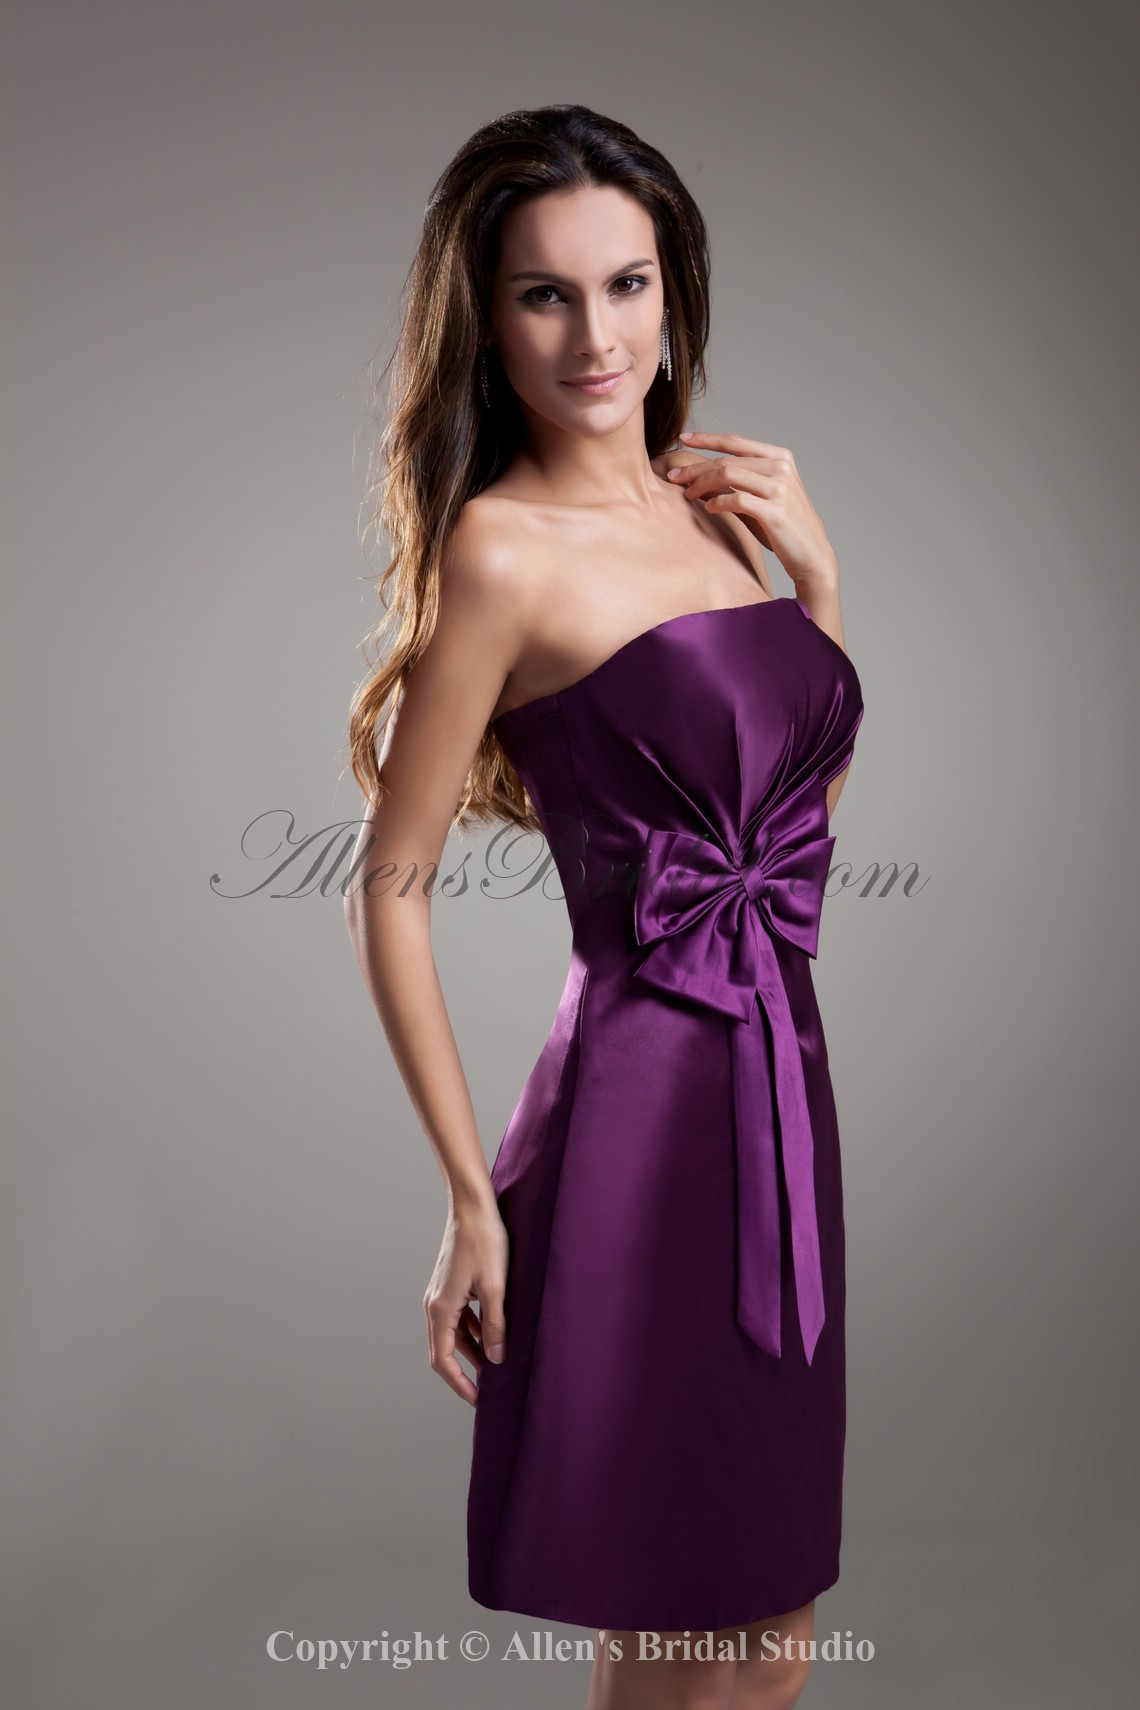 /734-5880/satin-strapless-neckline-short-sheath-bow-cocktail-dress.jpg